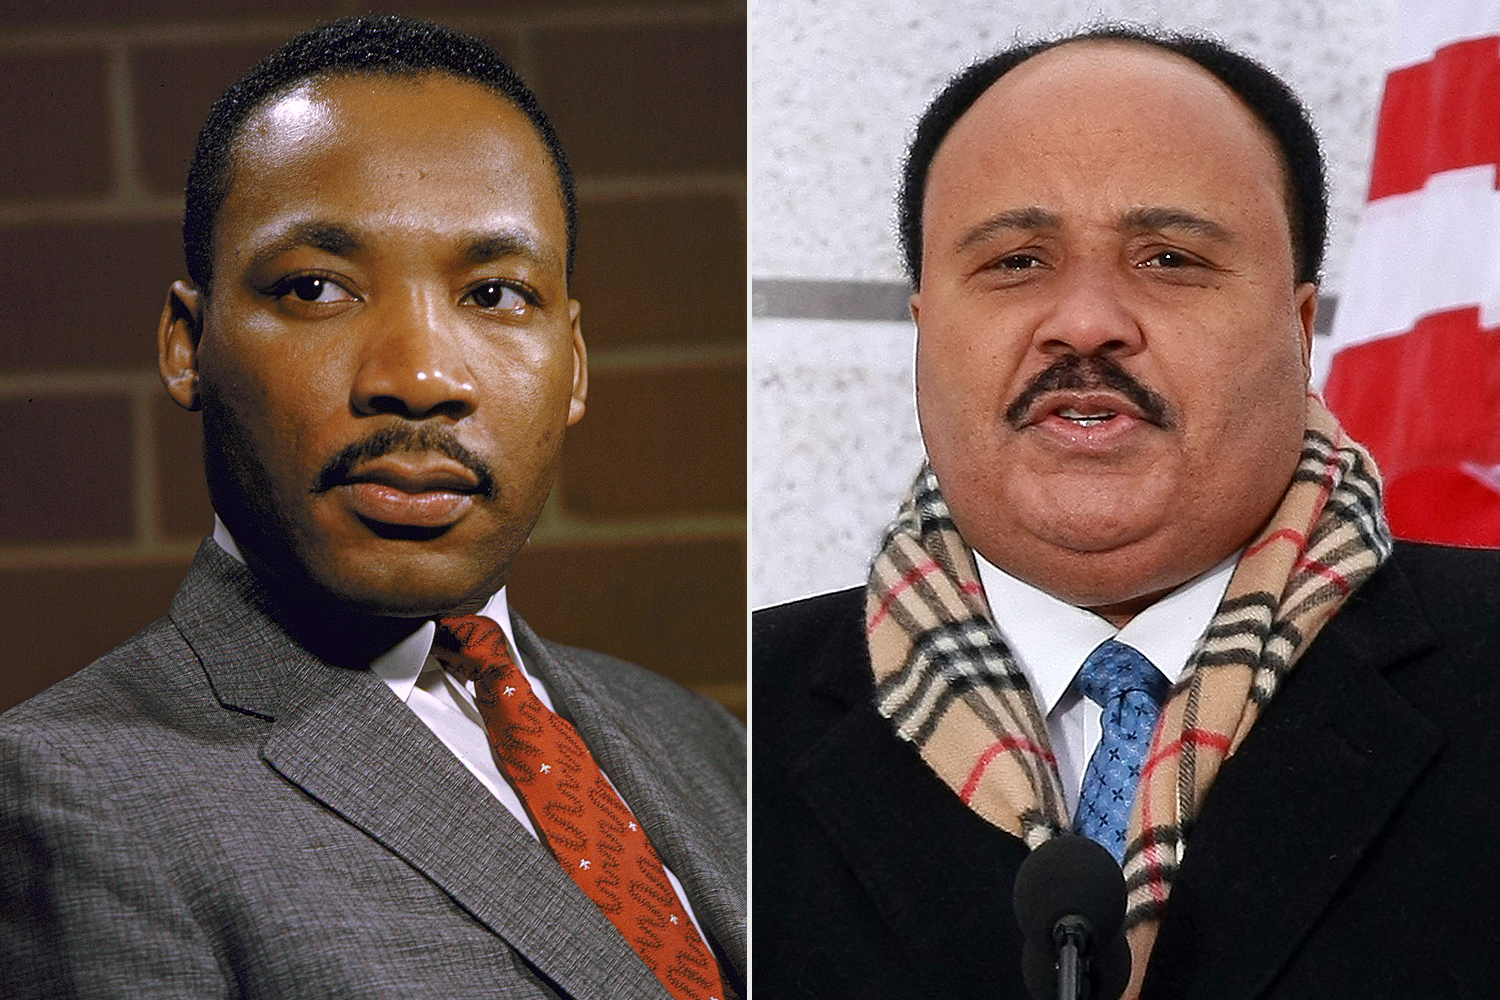 Martin Luther King Jr., Martin Luther King III